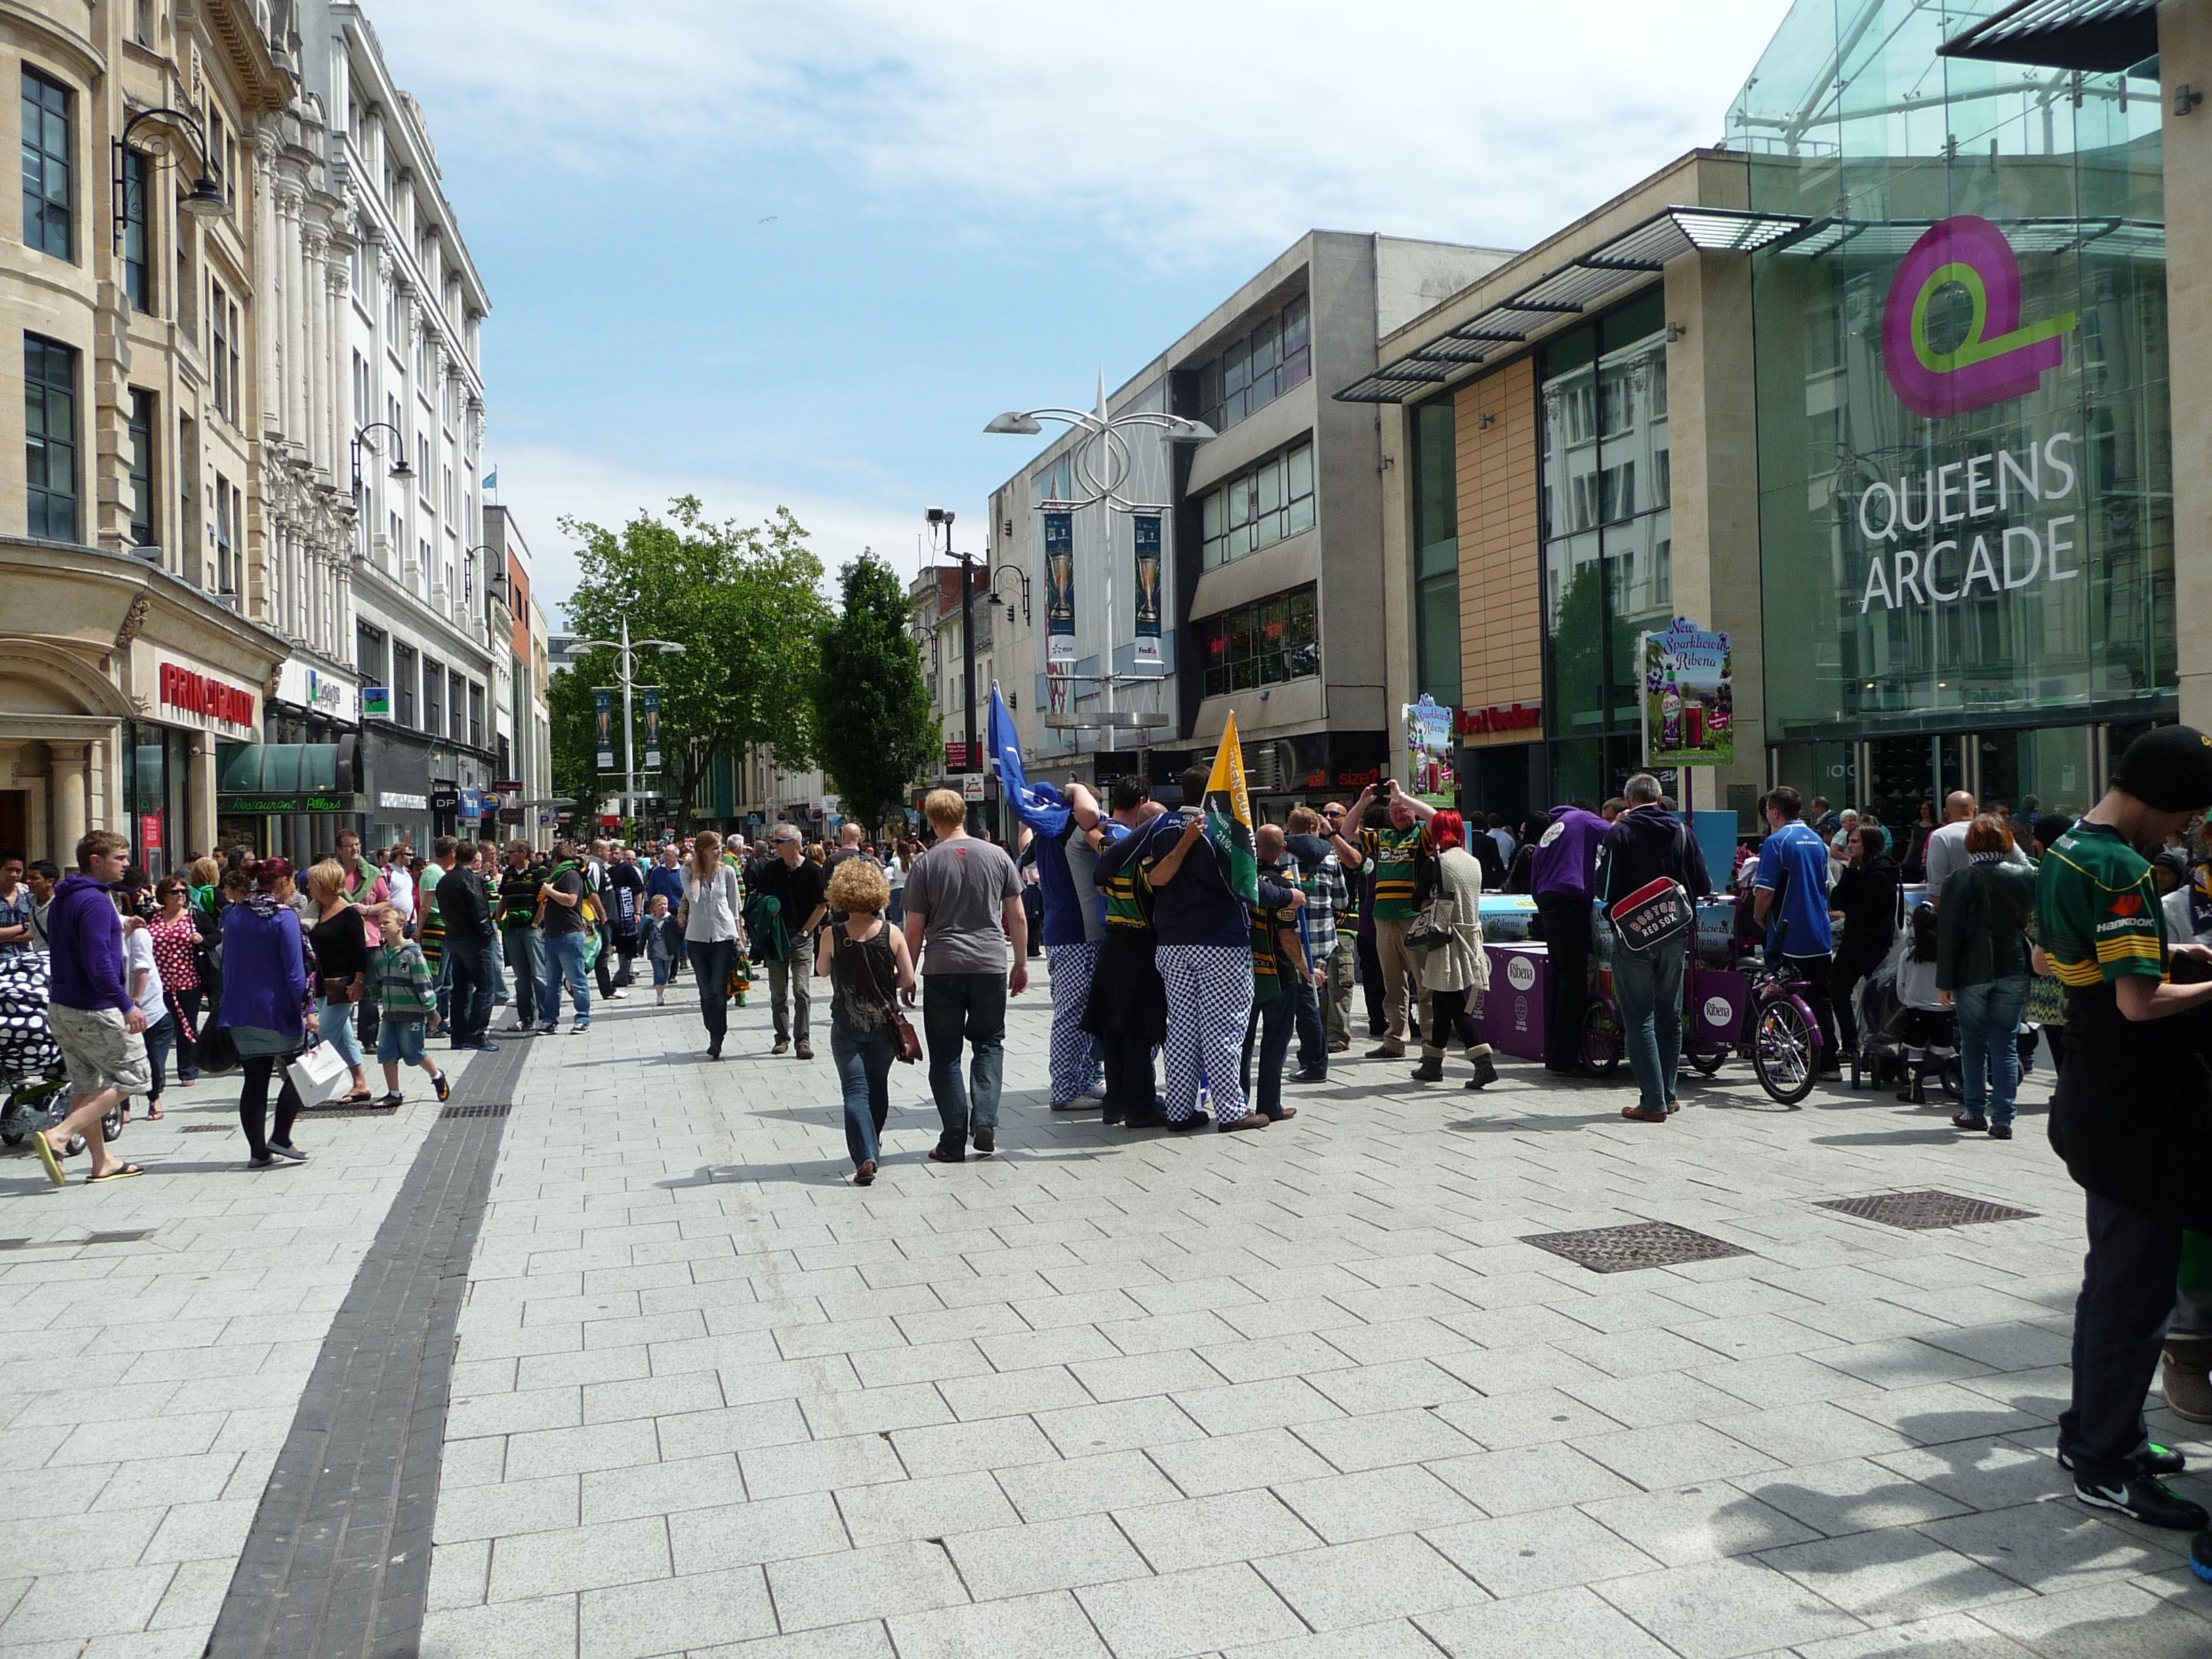 Cardiff Cardiff, South wales, Great places